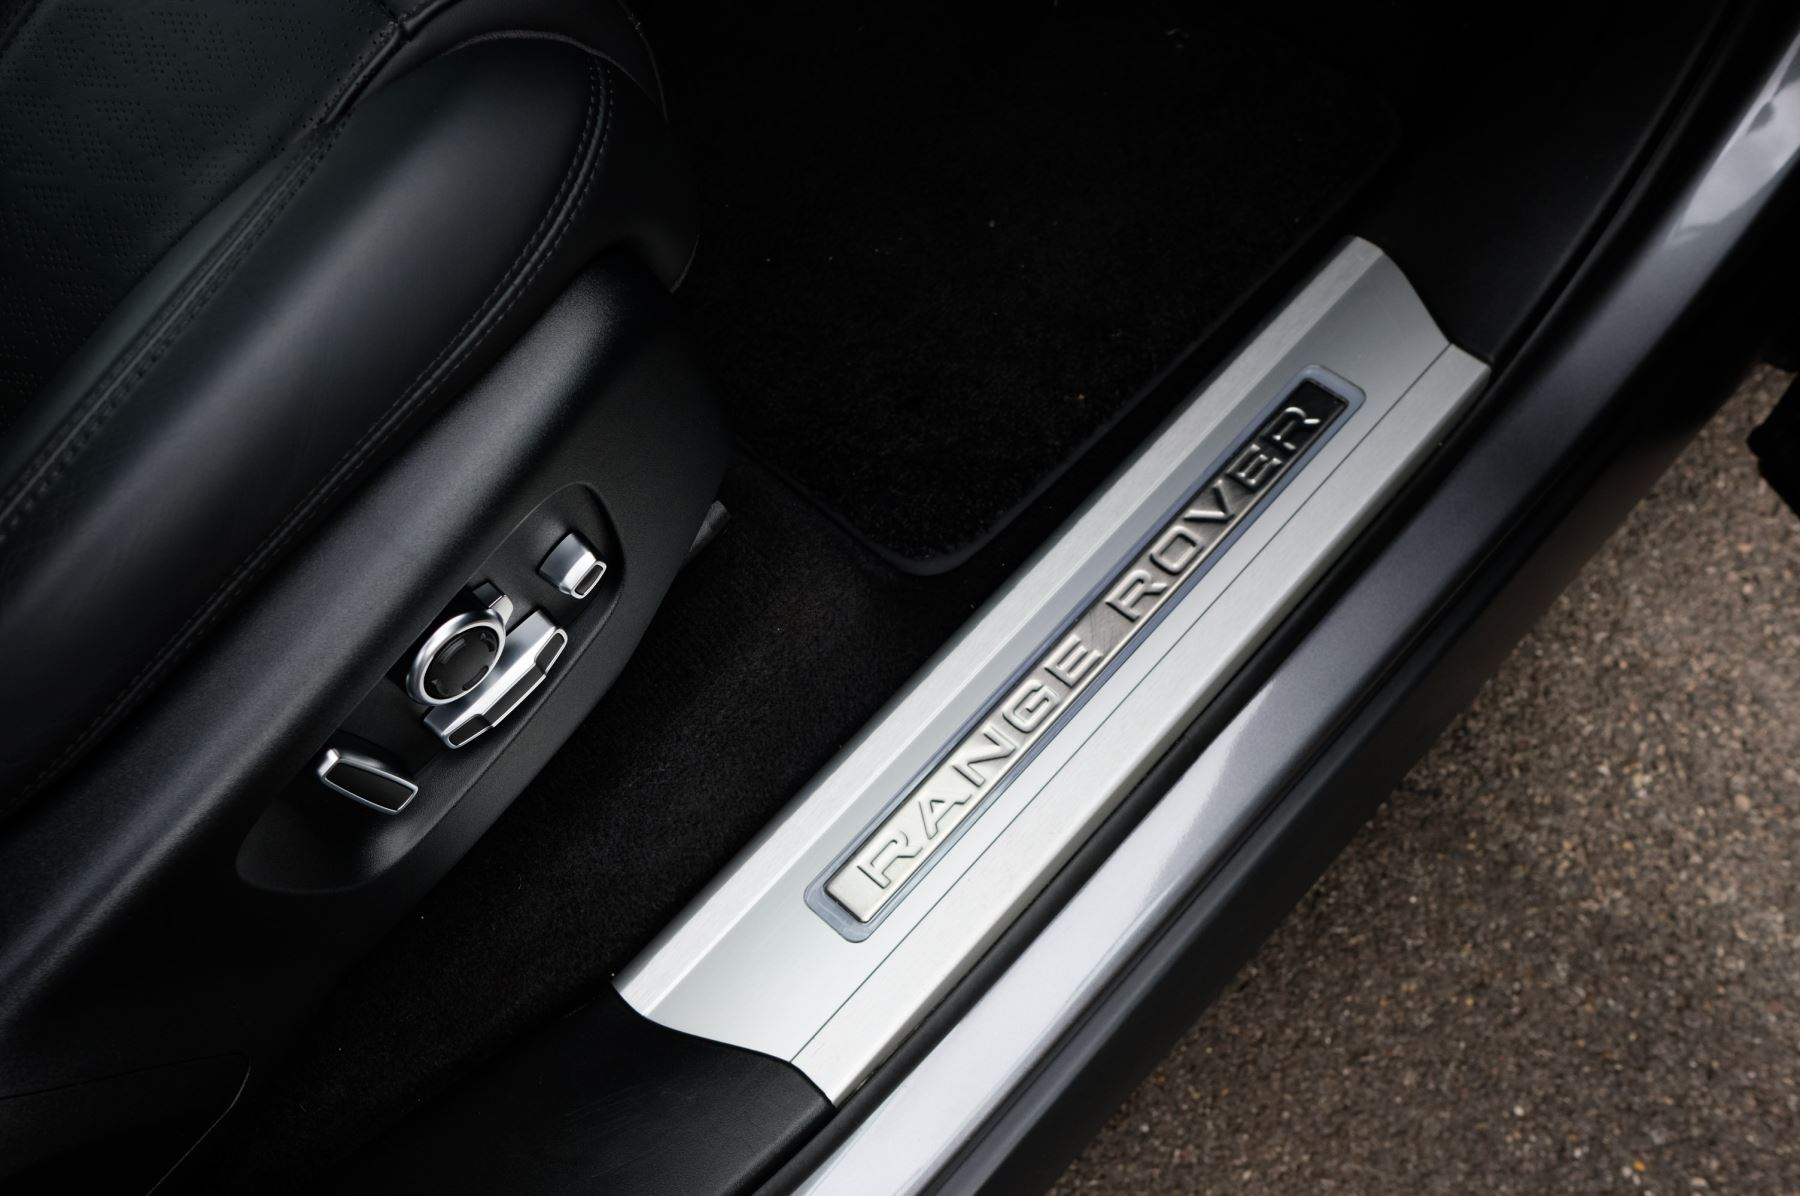 Land Rover Range Rover Sport 3.0 SDV6 Autobiography Dynamic 5dr [7 Seat] - Rear Seat Entertainment - 21 Inch Alloys image 13